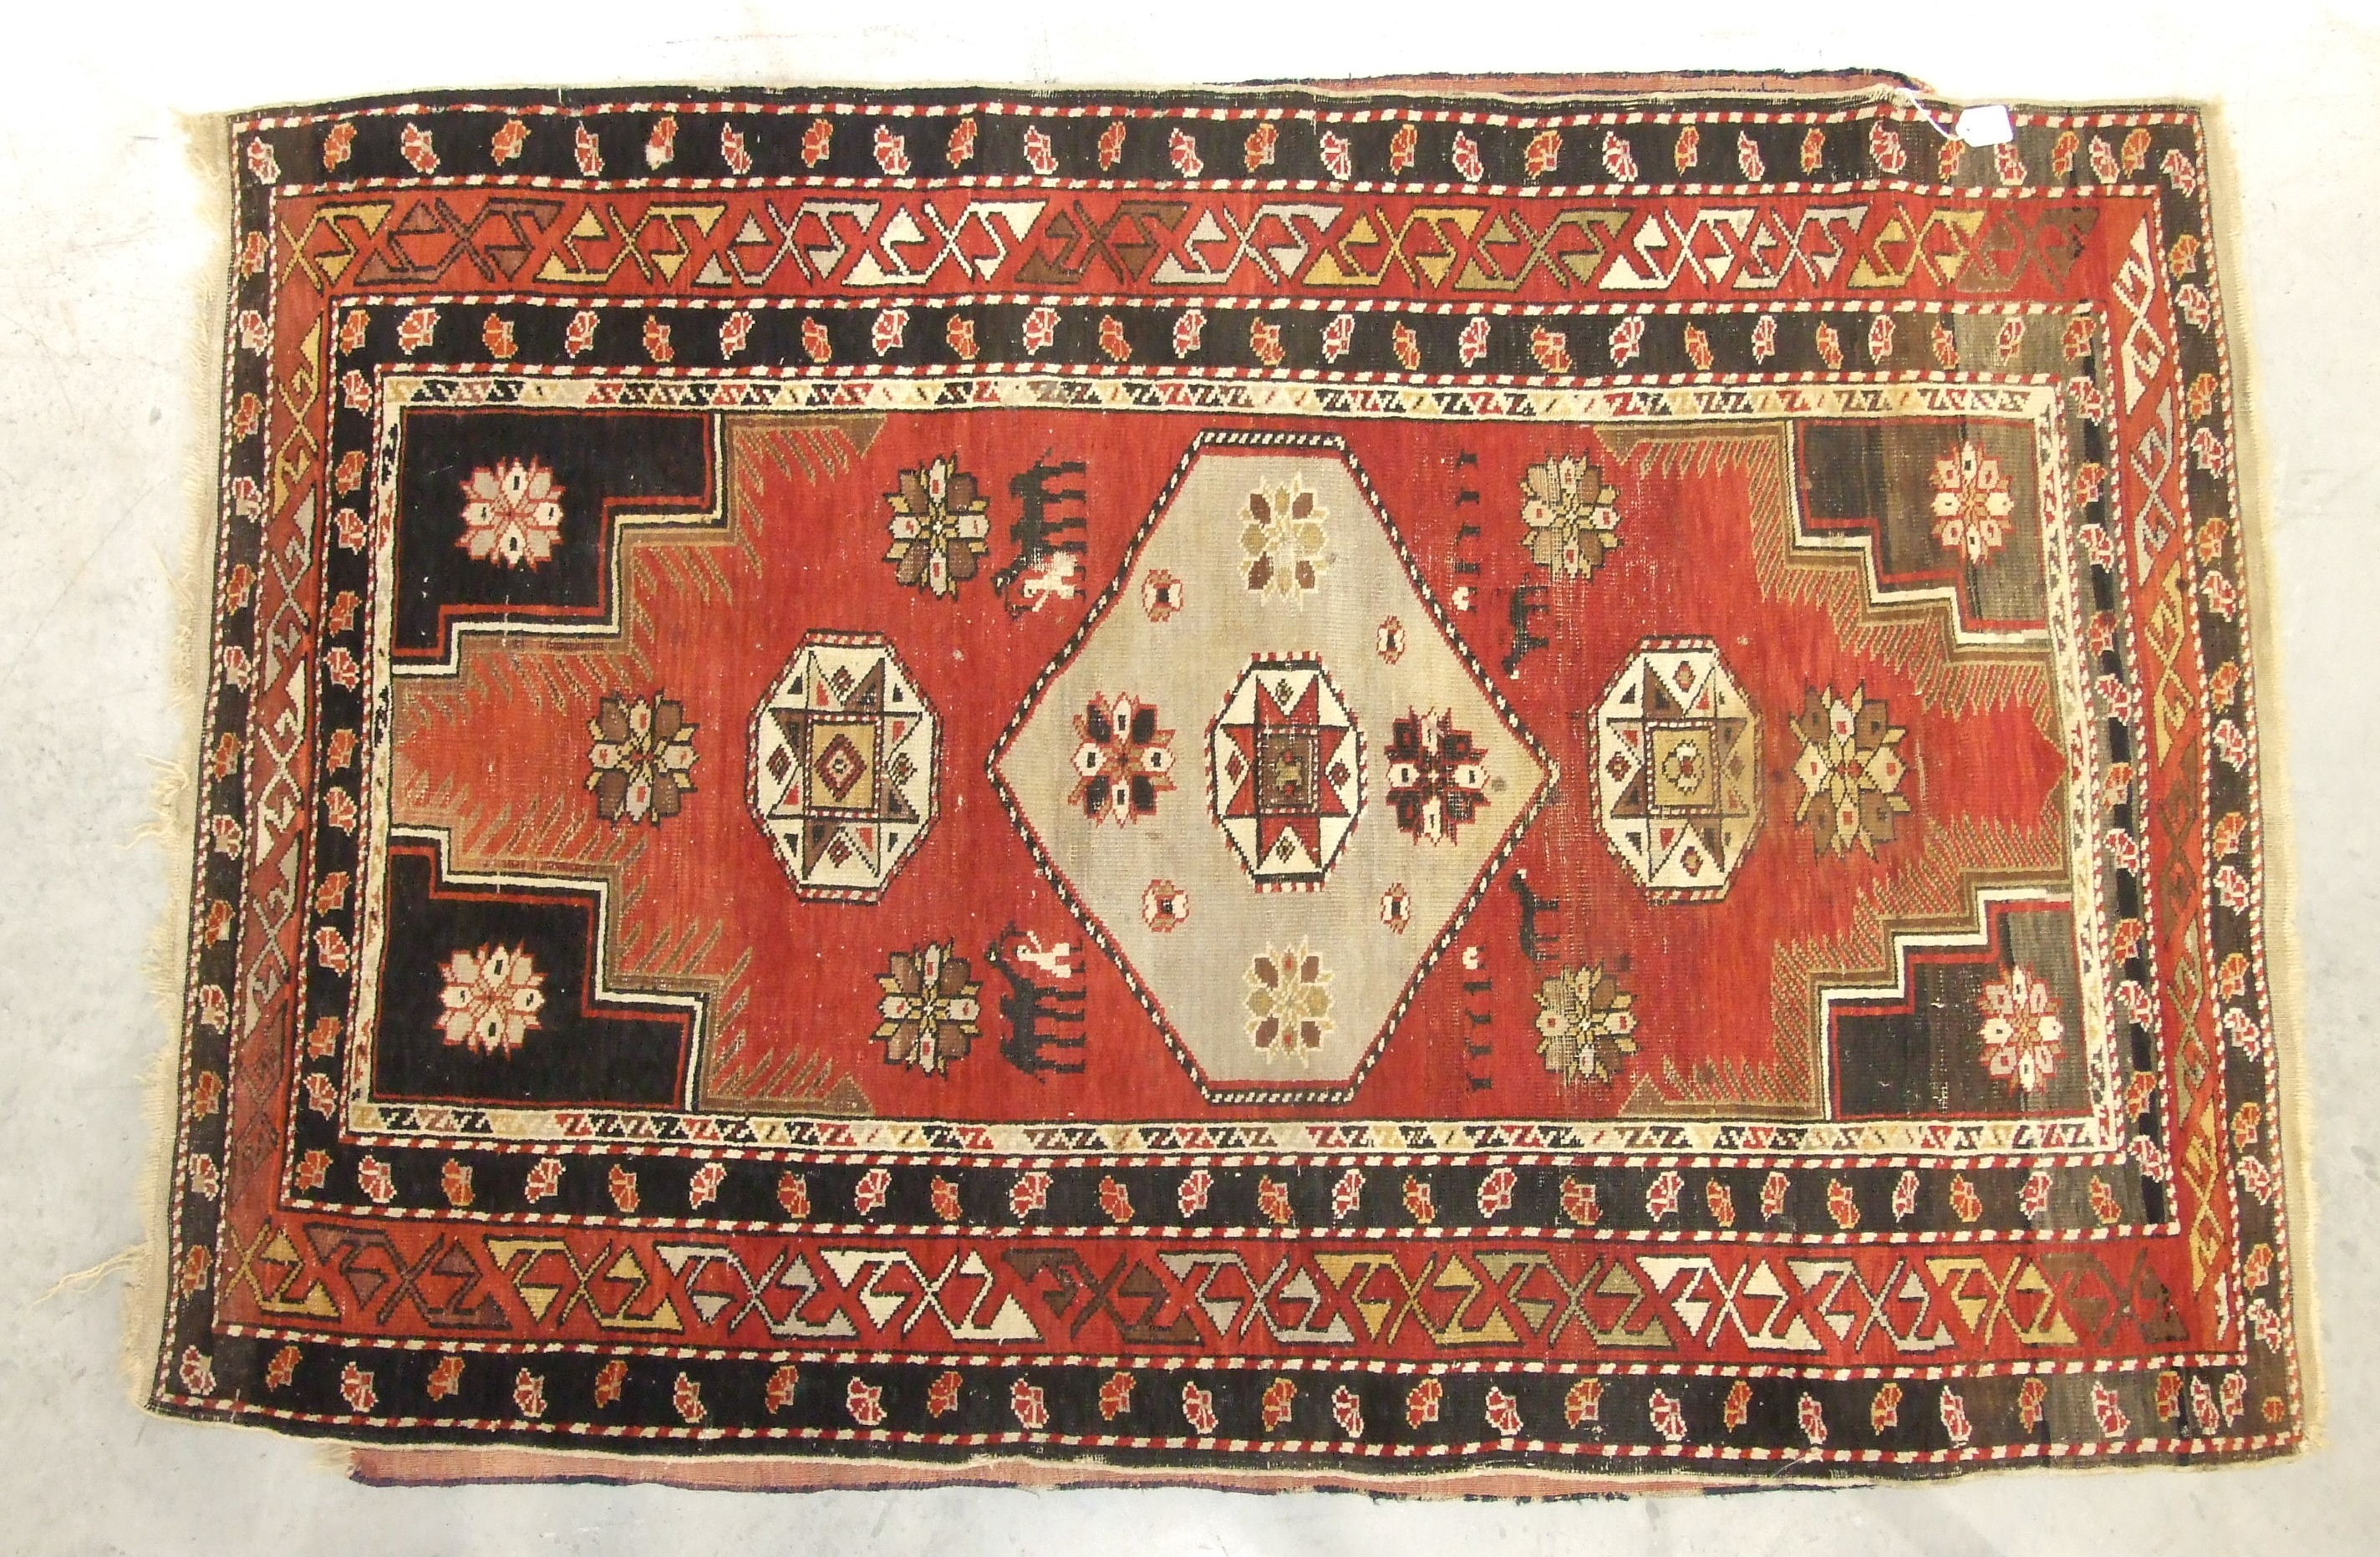 A mid-20th century wool rug, red field with central hexagonal medallions, figures leading camels and